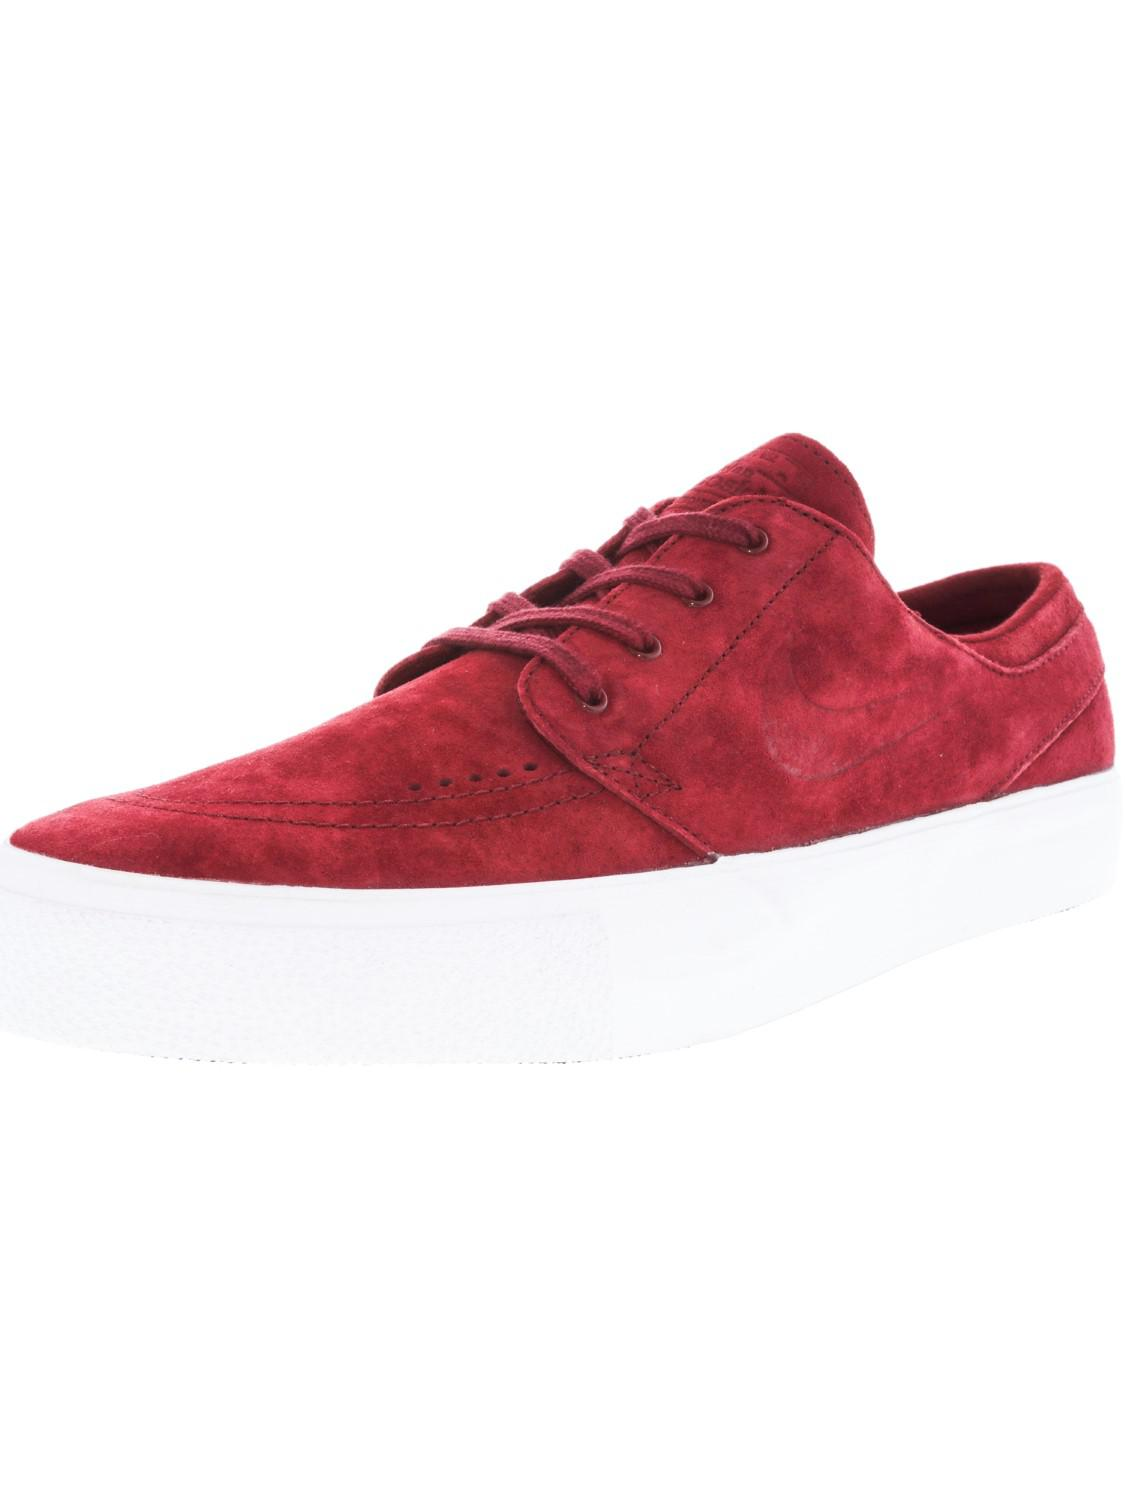 sports shoes 01023 8353b Lyst - Nike Zoom Stefan Janoski Prem Ht Team Red team Red White ...